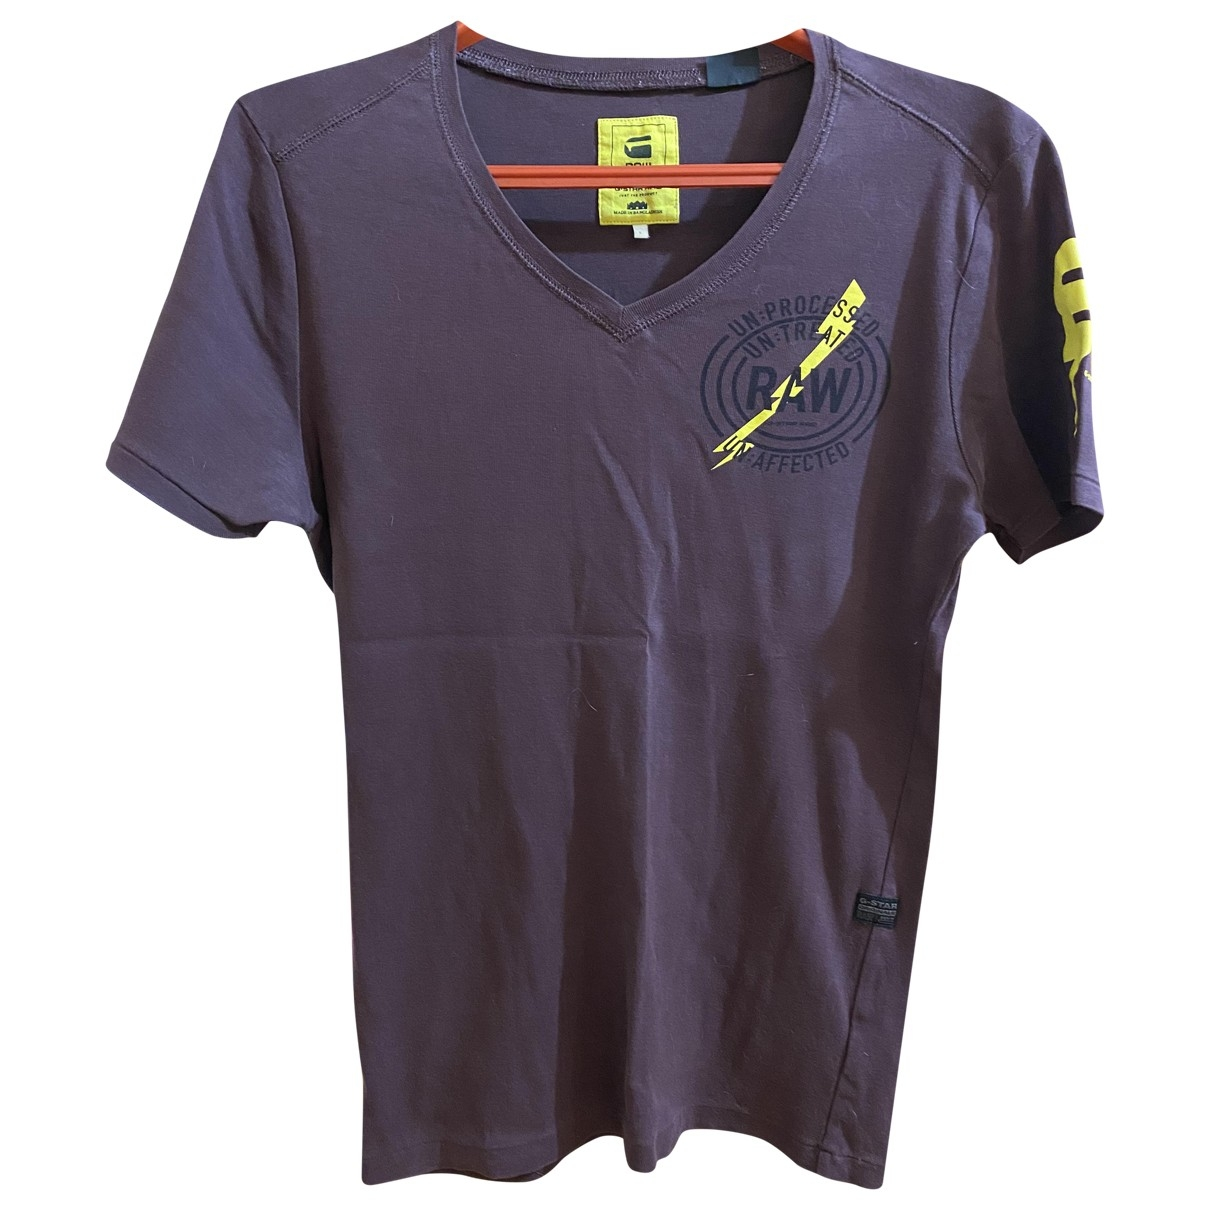 & Stories \N Brown Cotton T-shirts for Men S International